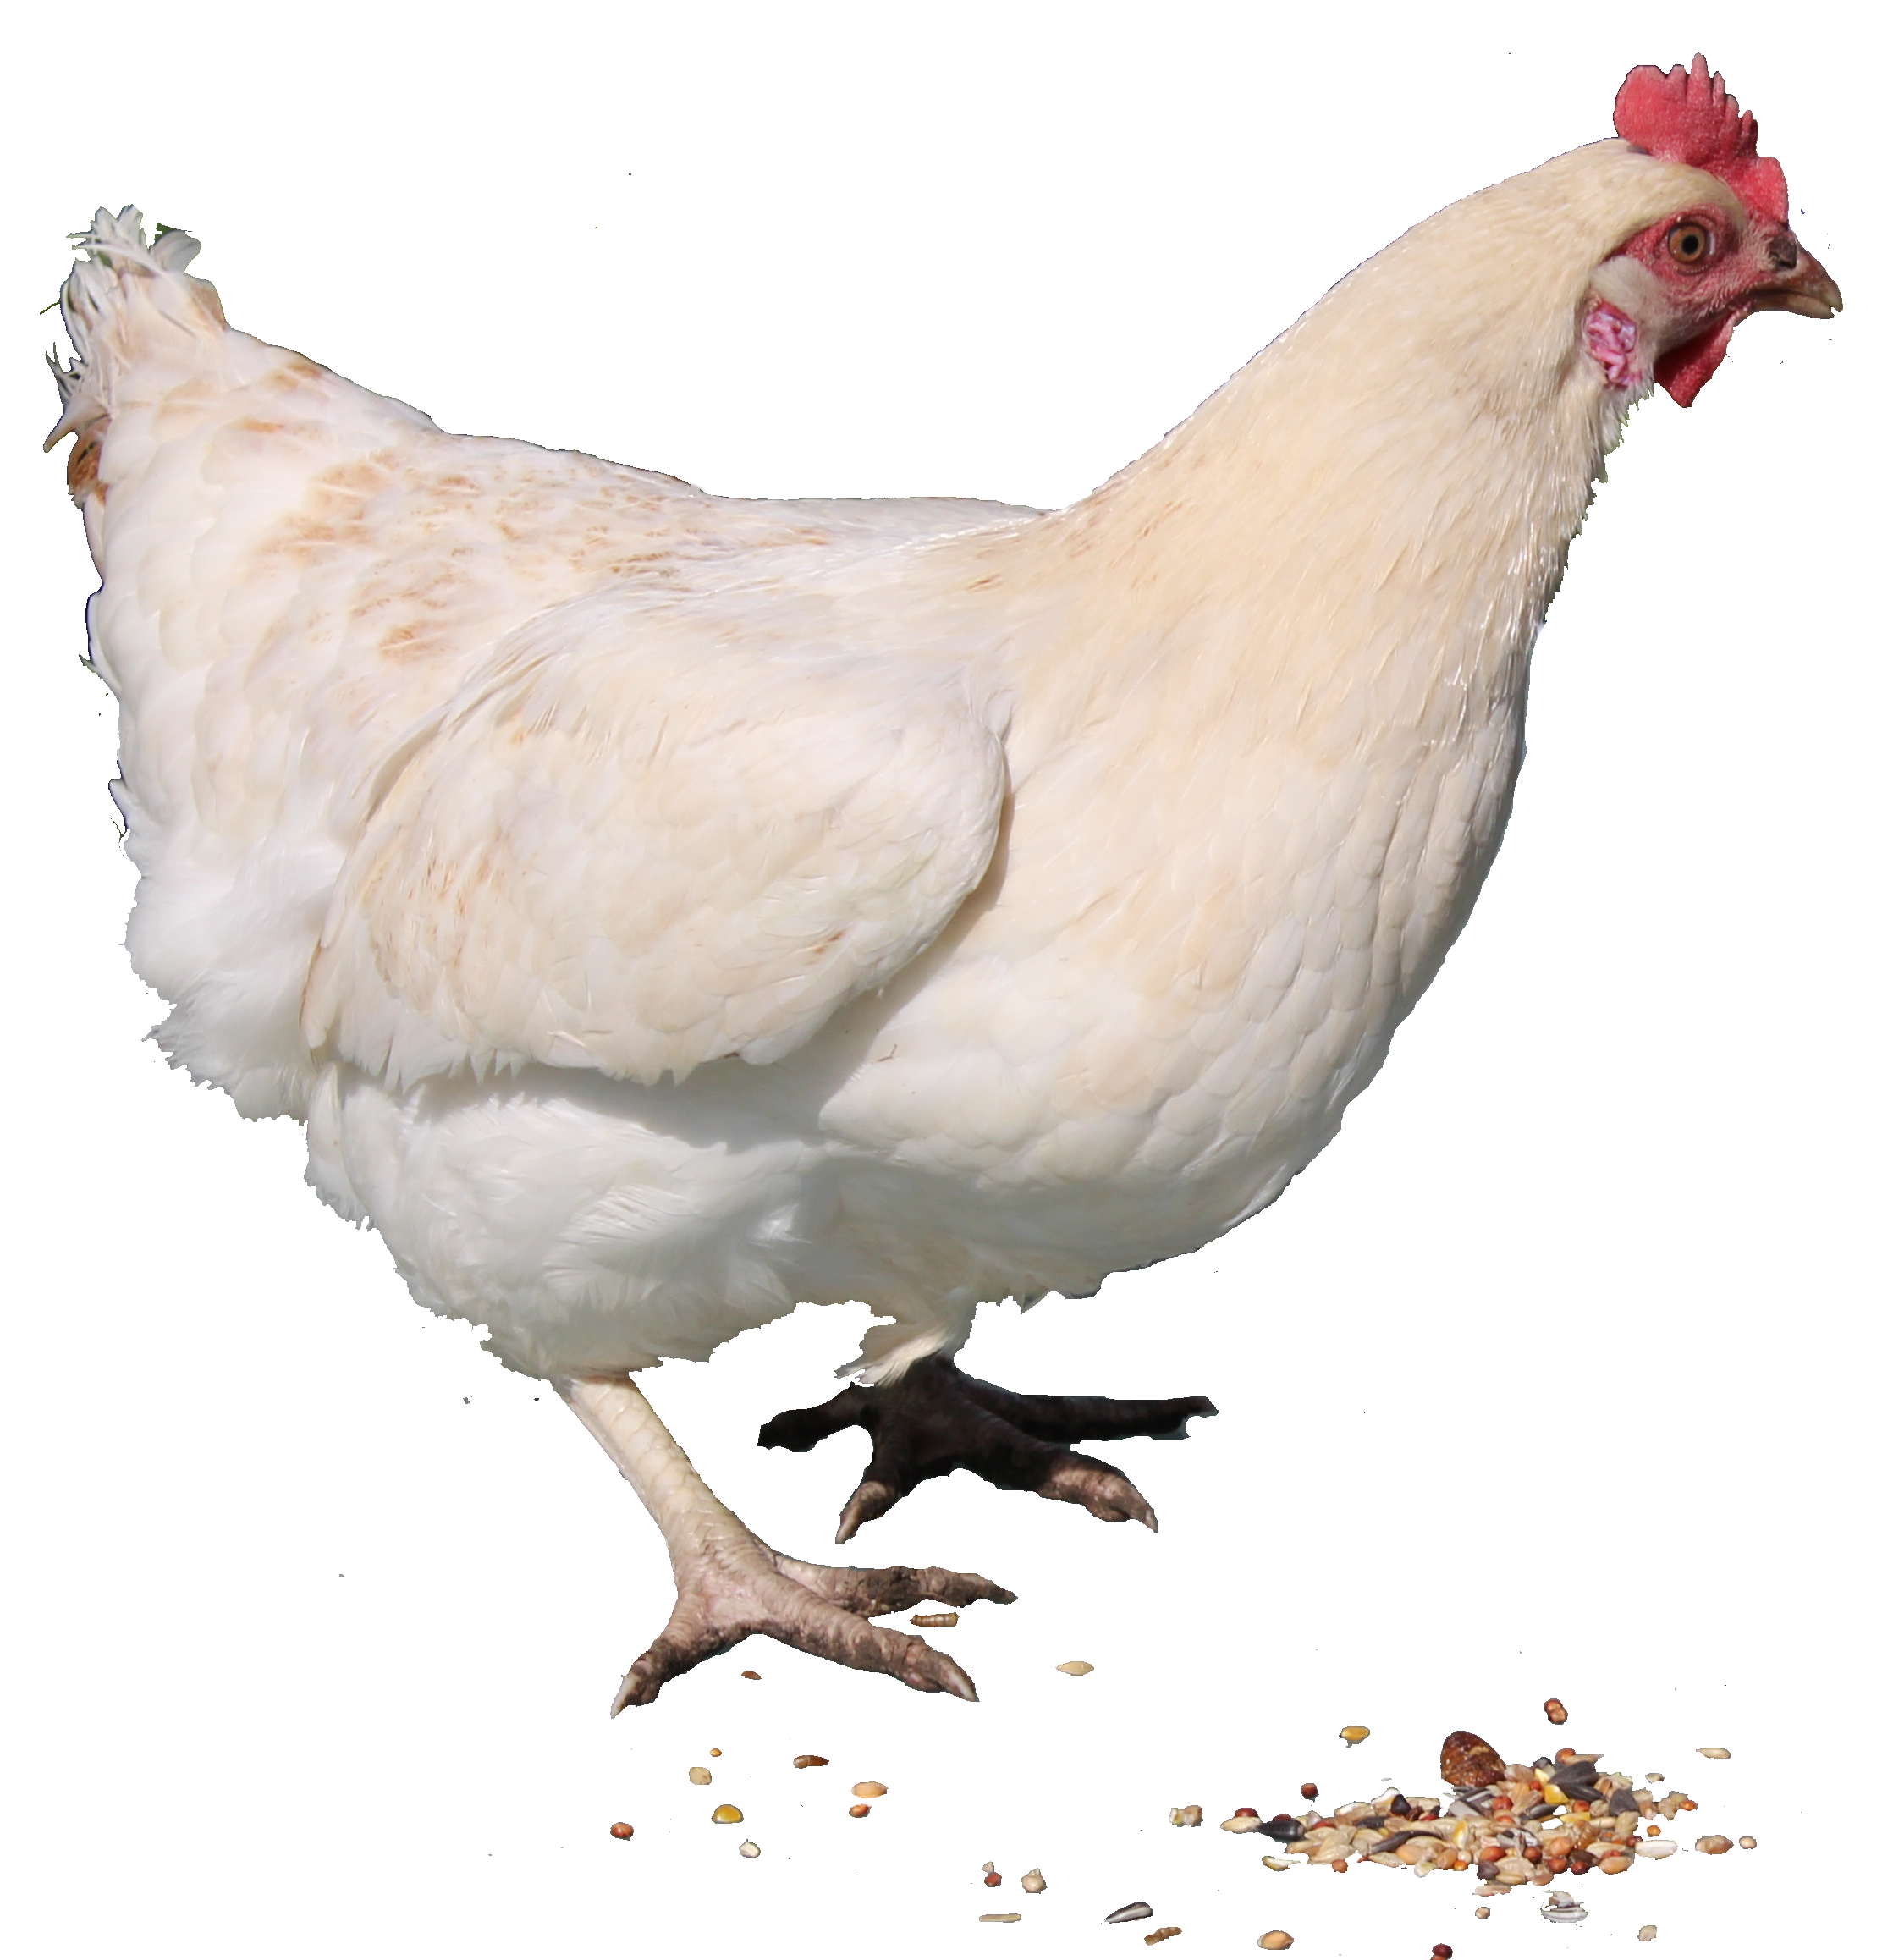 White Chicken Png image #40285 - Chicken PNG